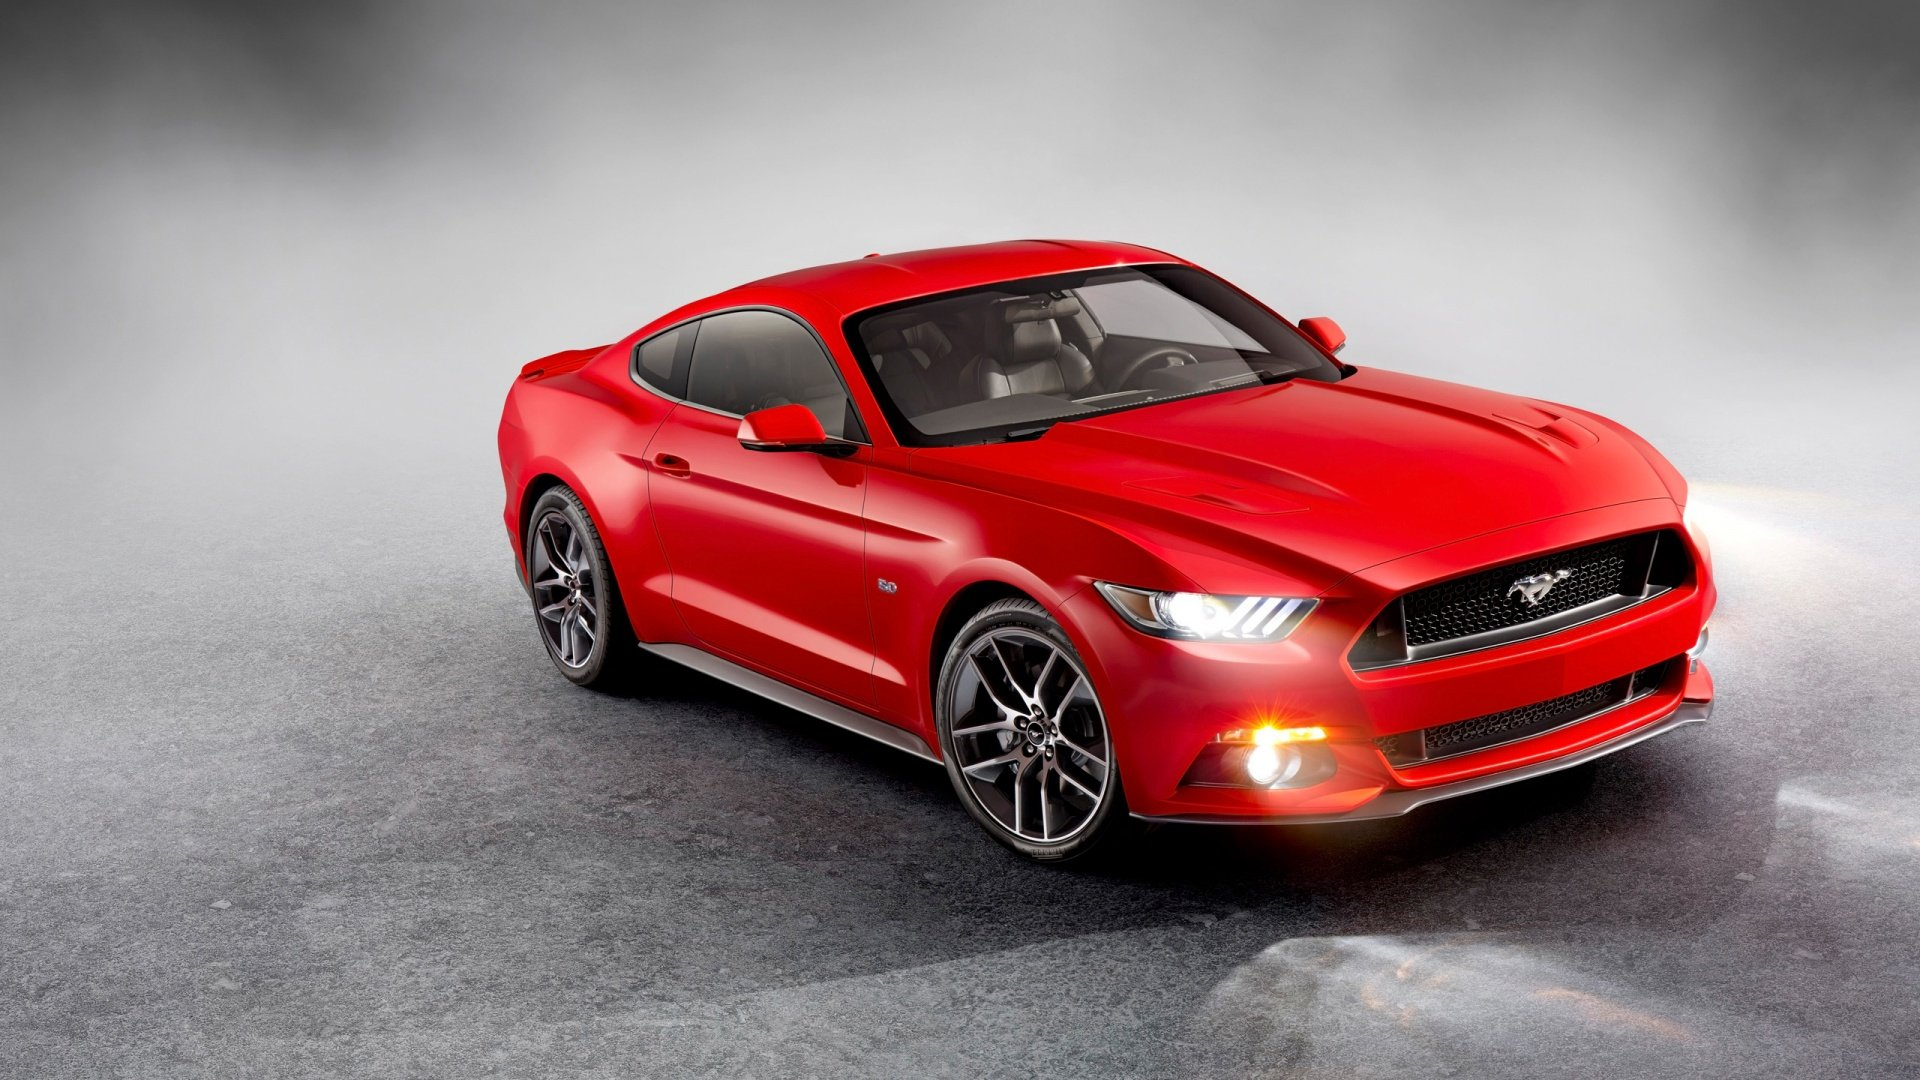 Ford Mustang 2015 Wallpapers HD Wallpapers 1920x1080